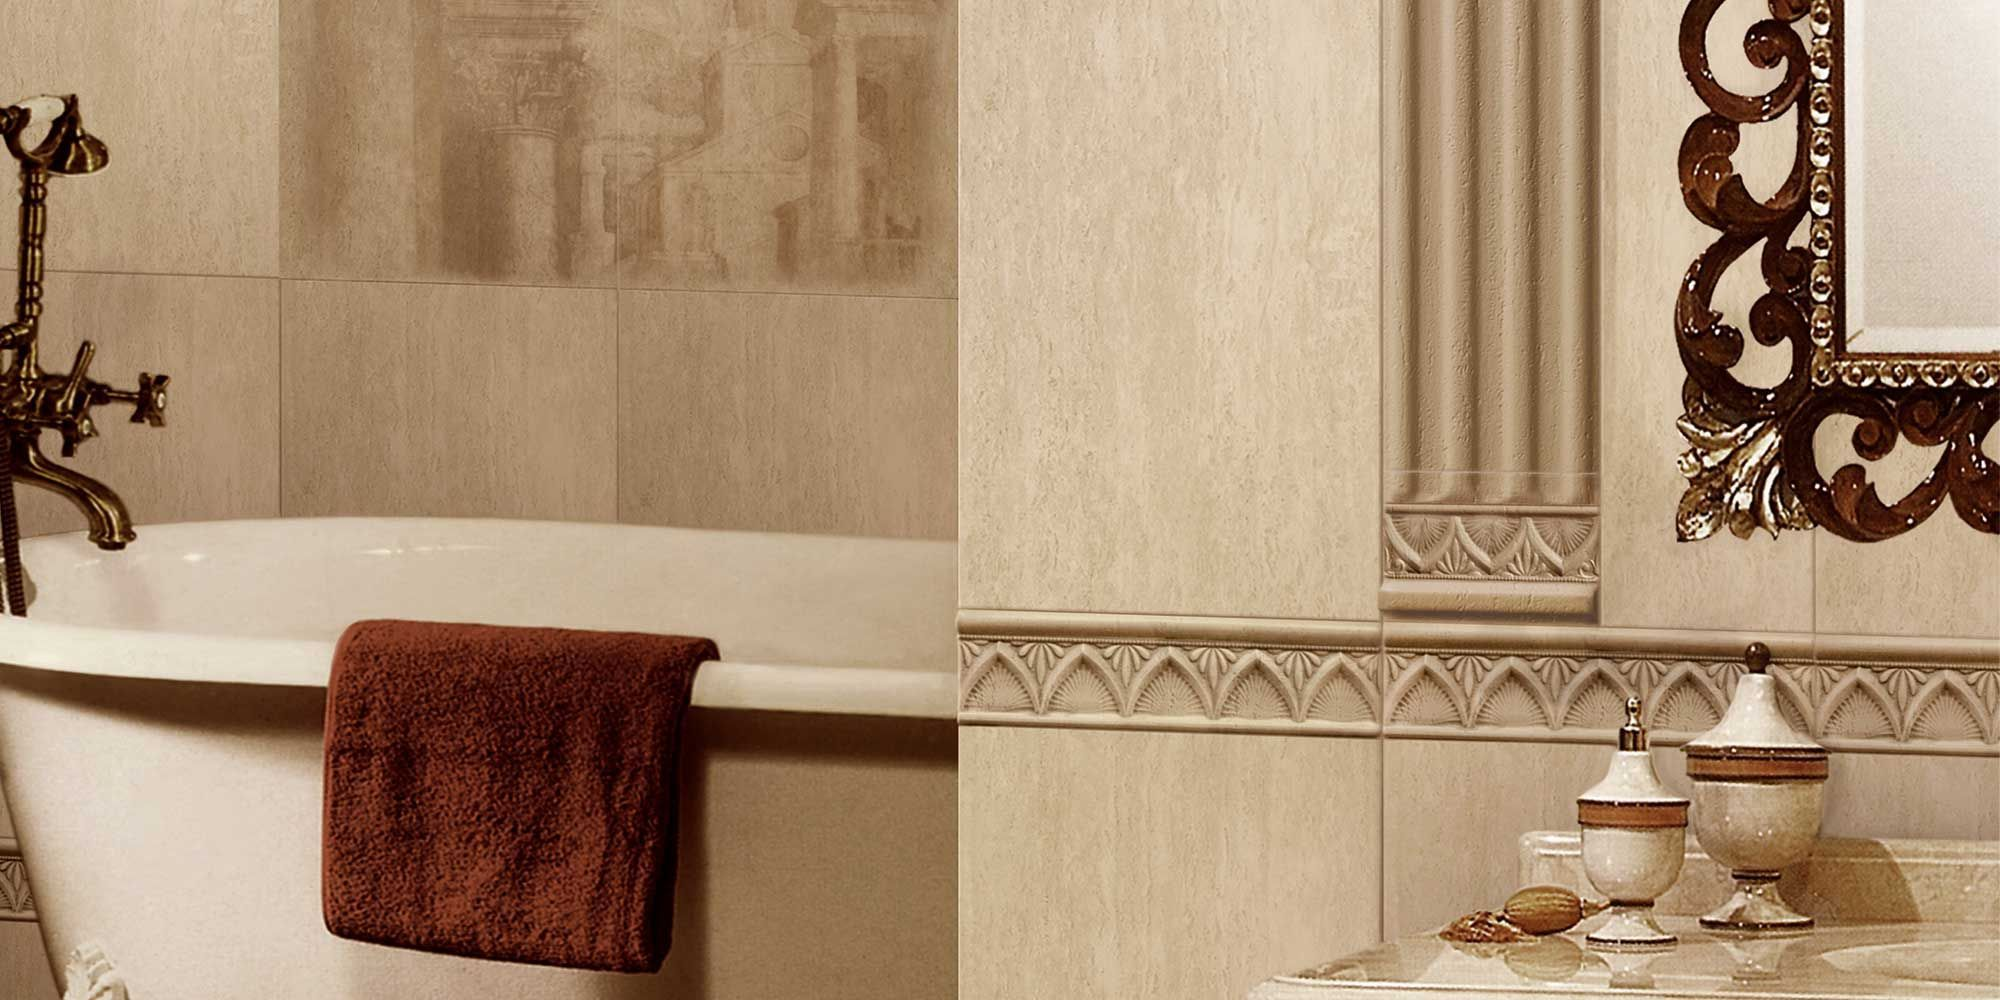 roccia supply this product 31x56 porcelanico roma inspiration